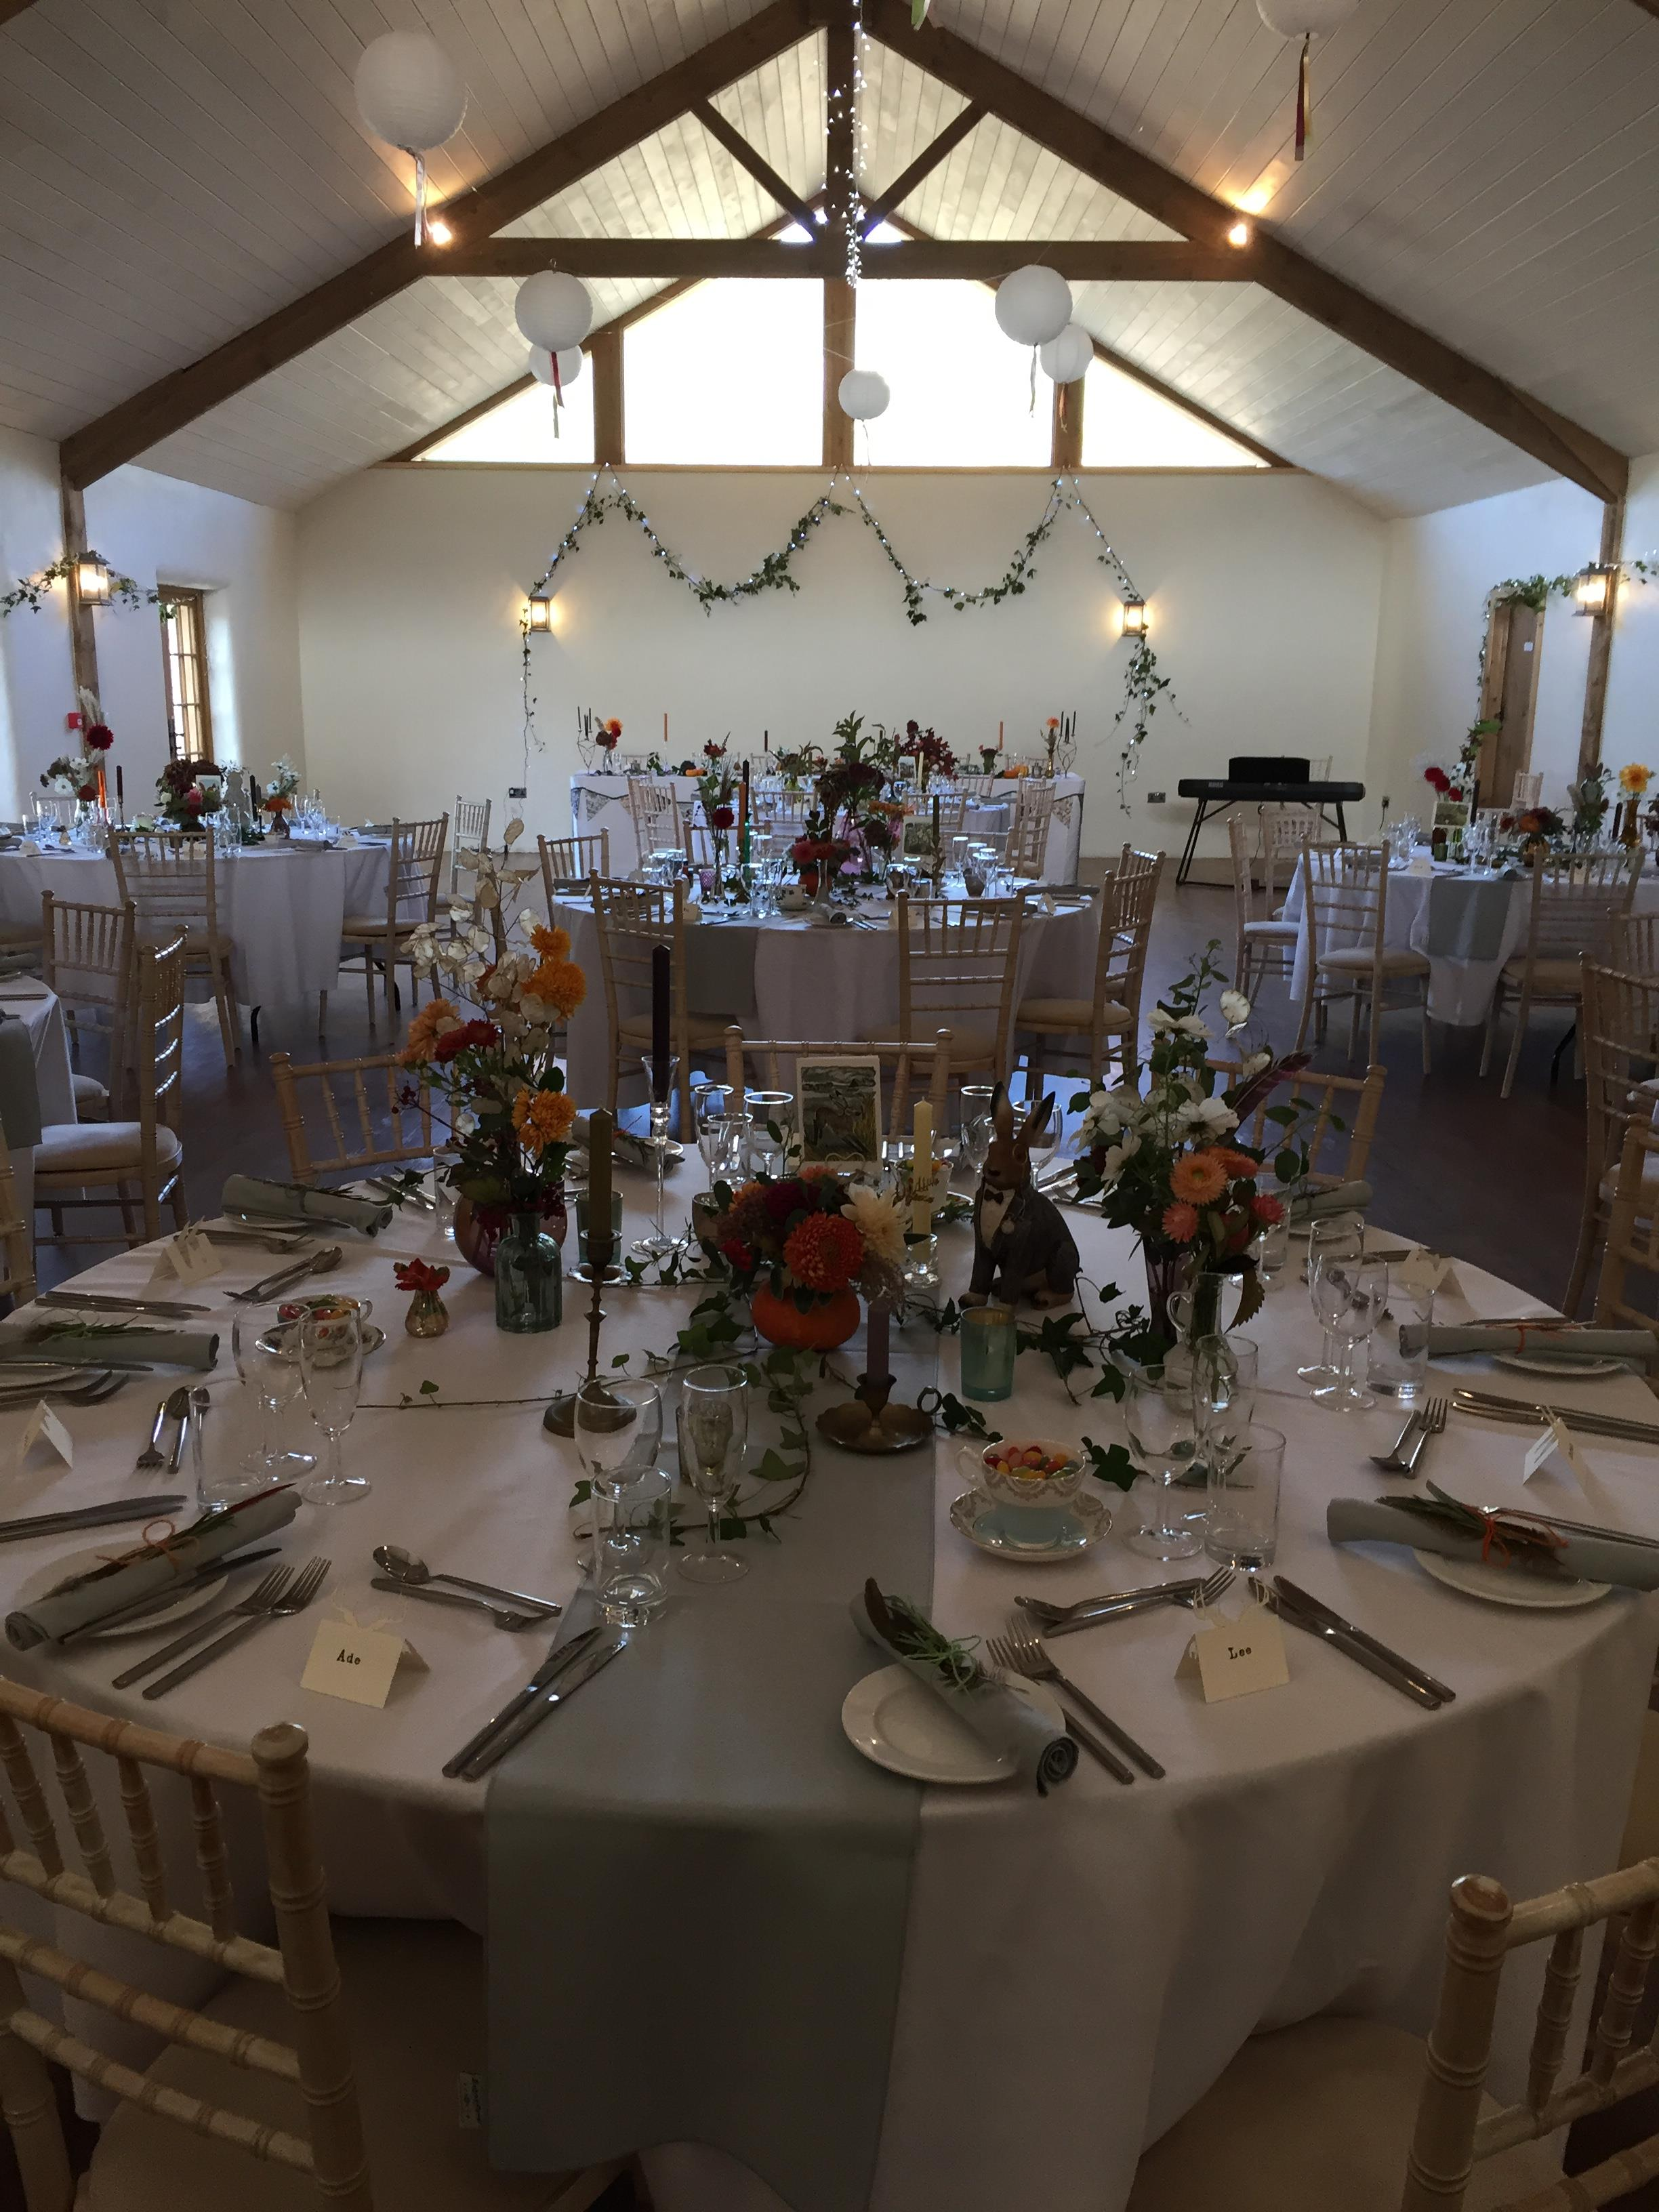 Cornwall event caterers